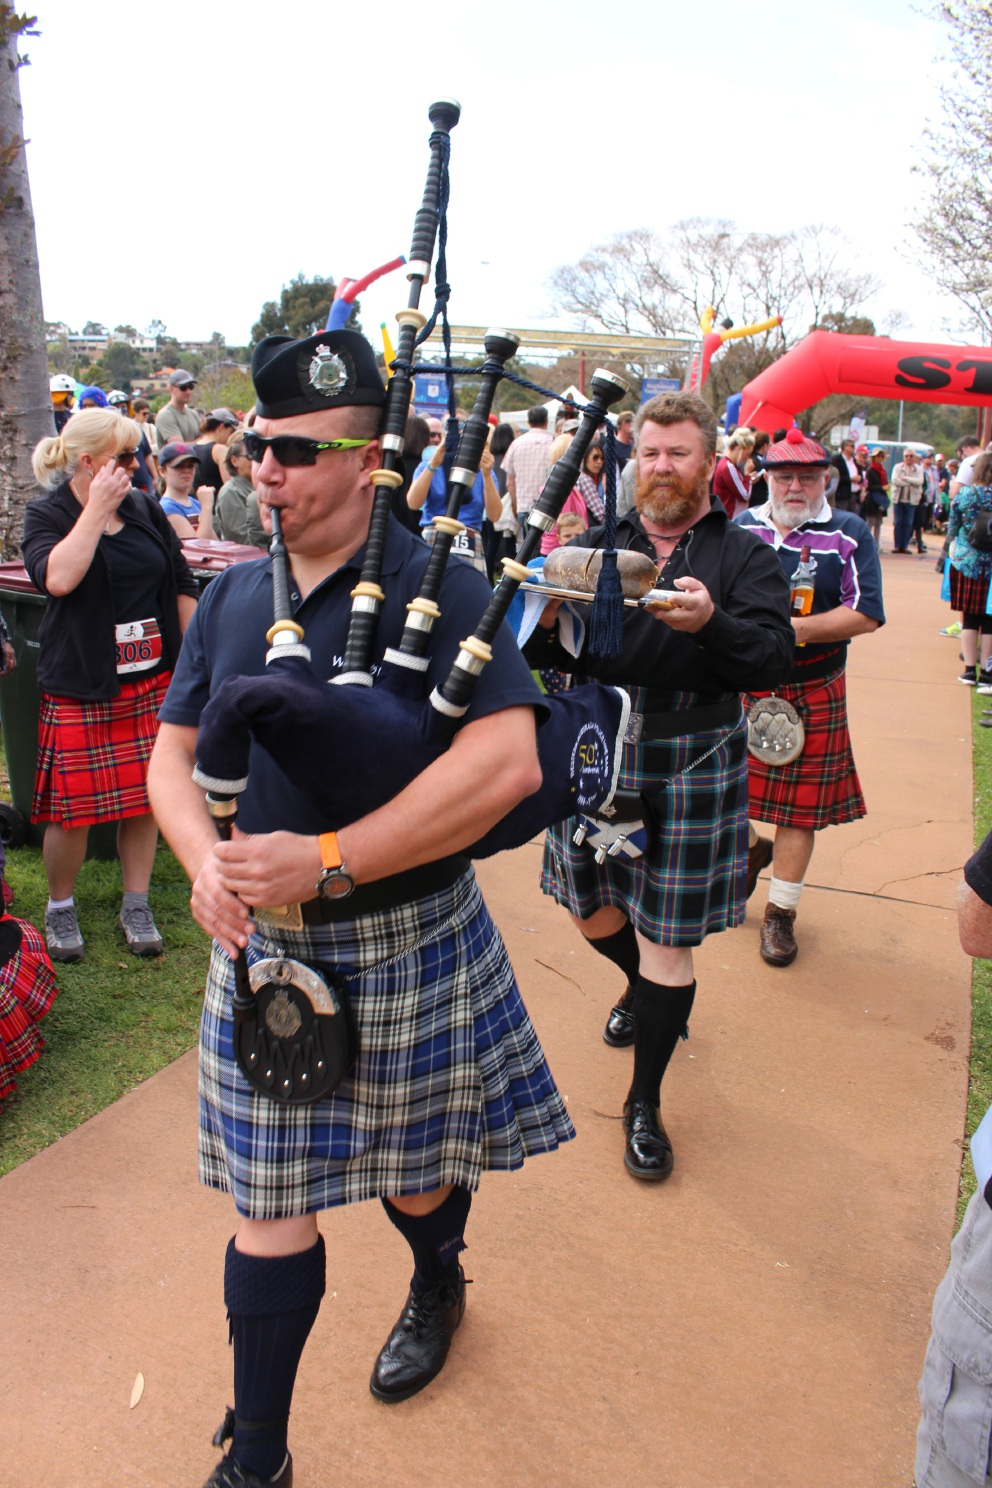 City of Armadale Kilt Run: kilt runners skirt bad weather